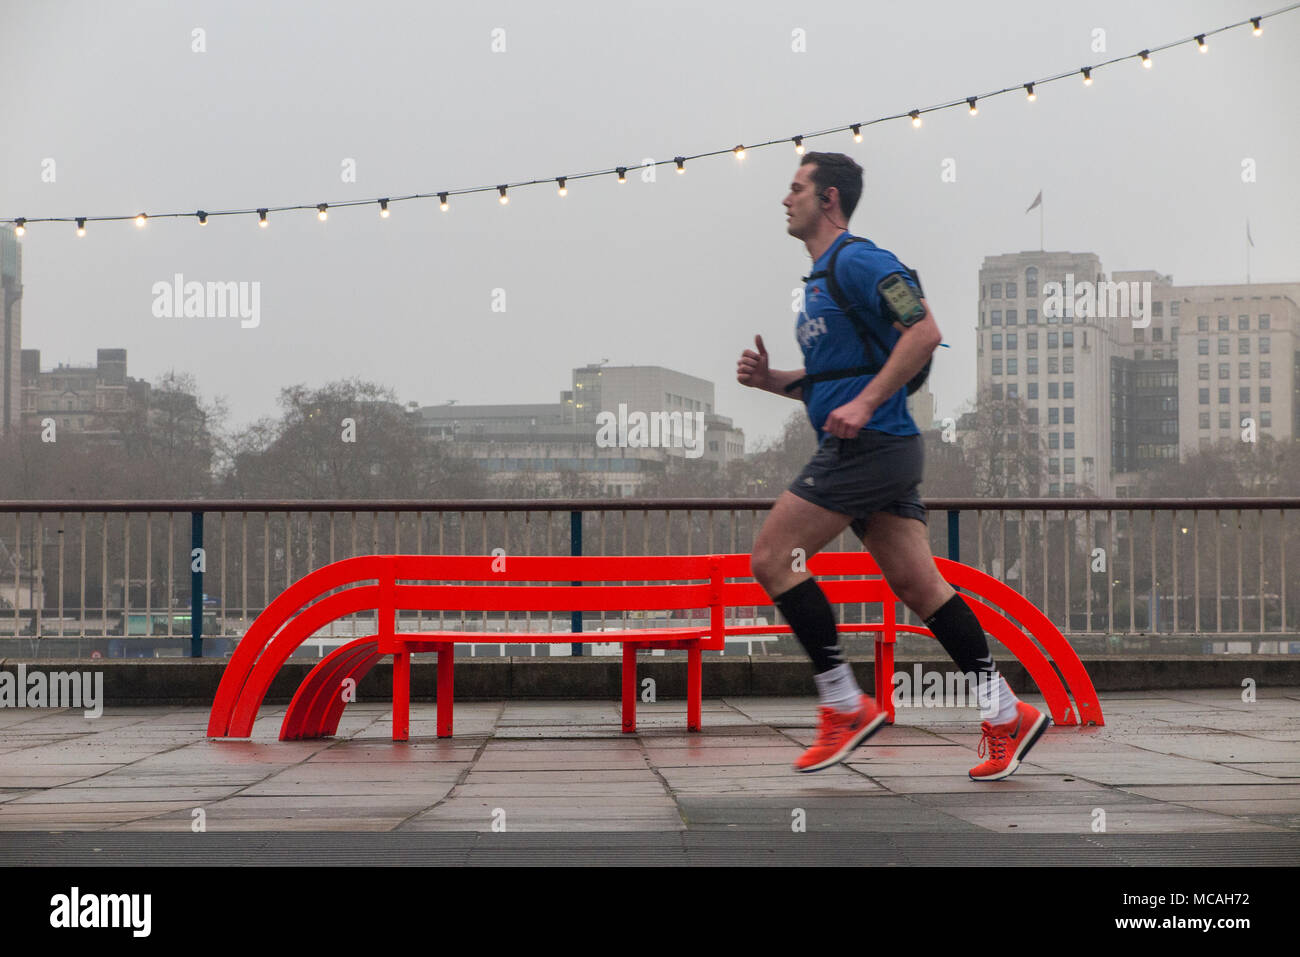 A man runs along the South Bank in front of a Jeppe Hein orange bench -part of the Modified Social Bench project and a string of lights on a grey day - Stock Image